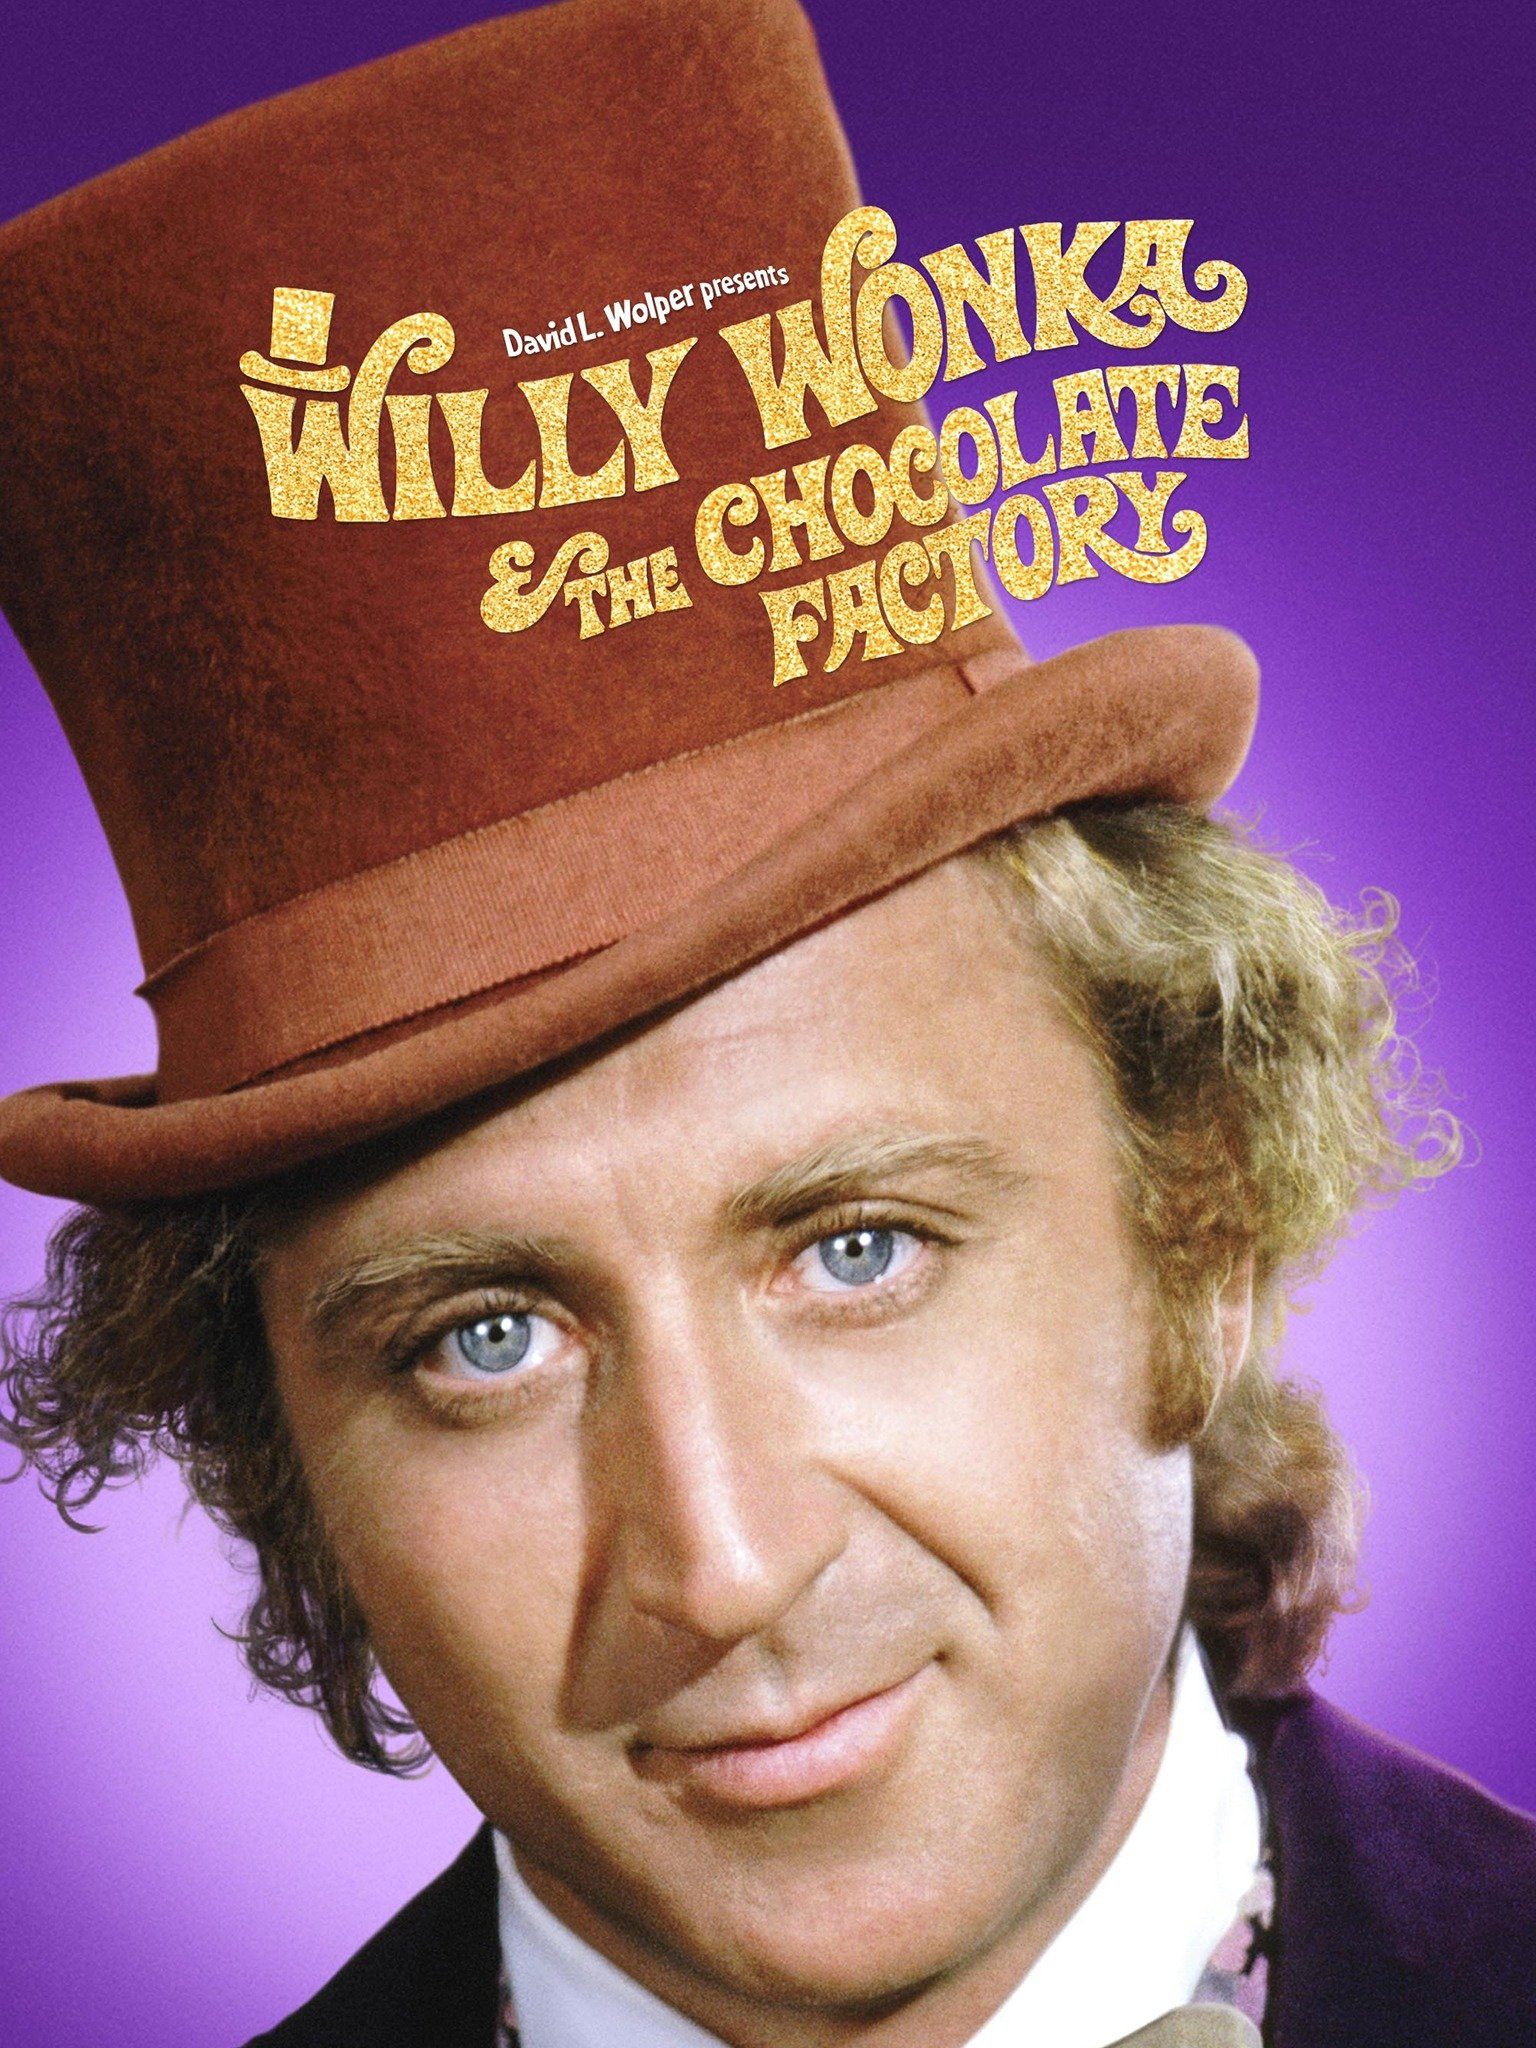 Willy Wonka and the Chocolate Factory (1971) - Rotten Tomatoes